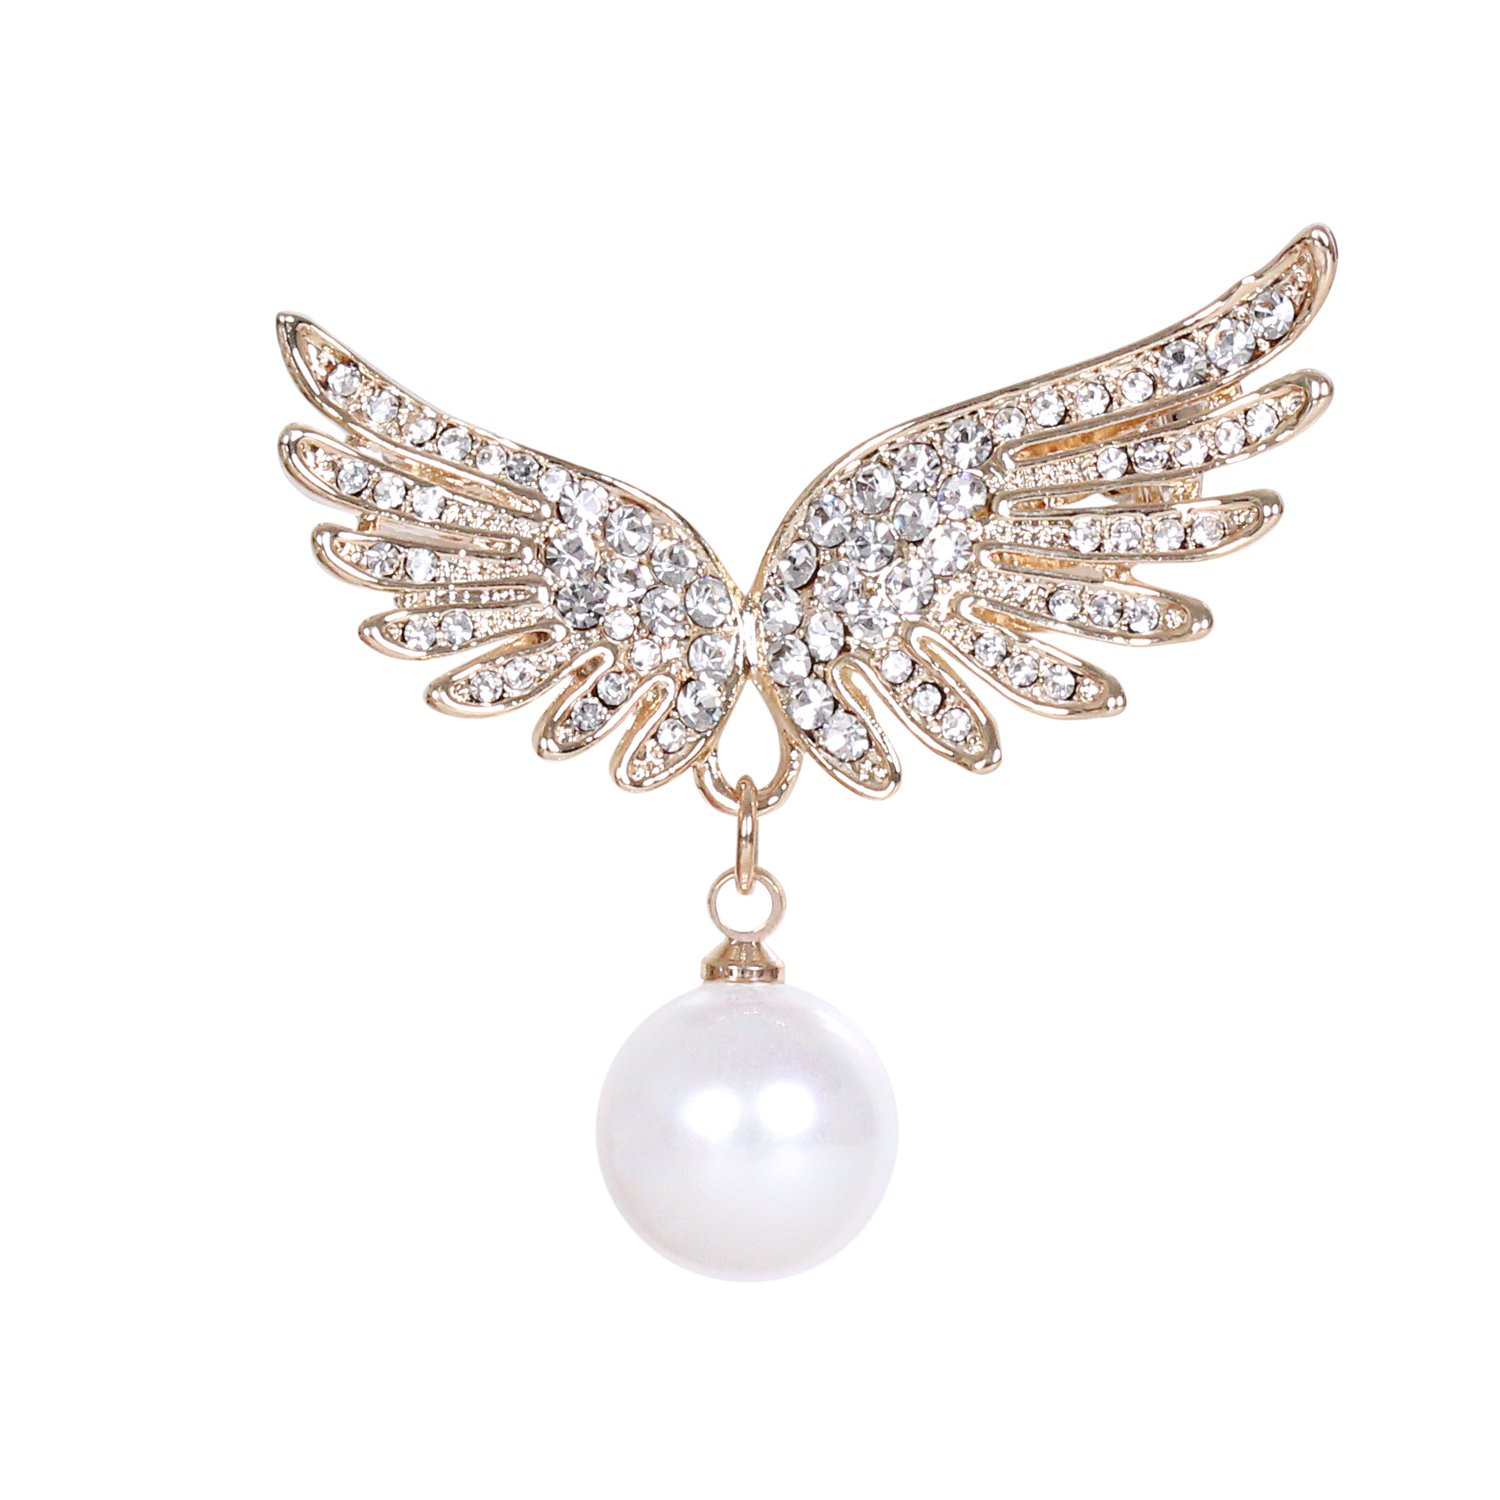 sourjas Fashion Simulated Pearl Jewelry Gold-tone Crystal Angel Wings Brooch Cute Women Wedding Bridal Pins